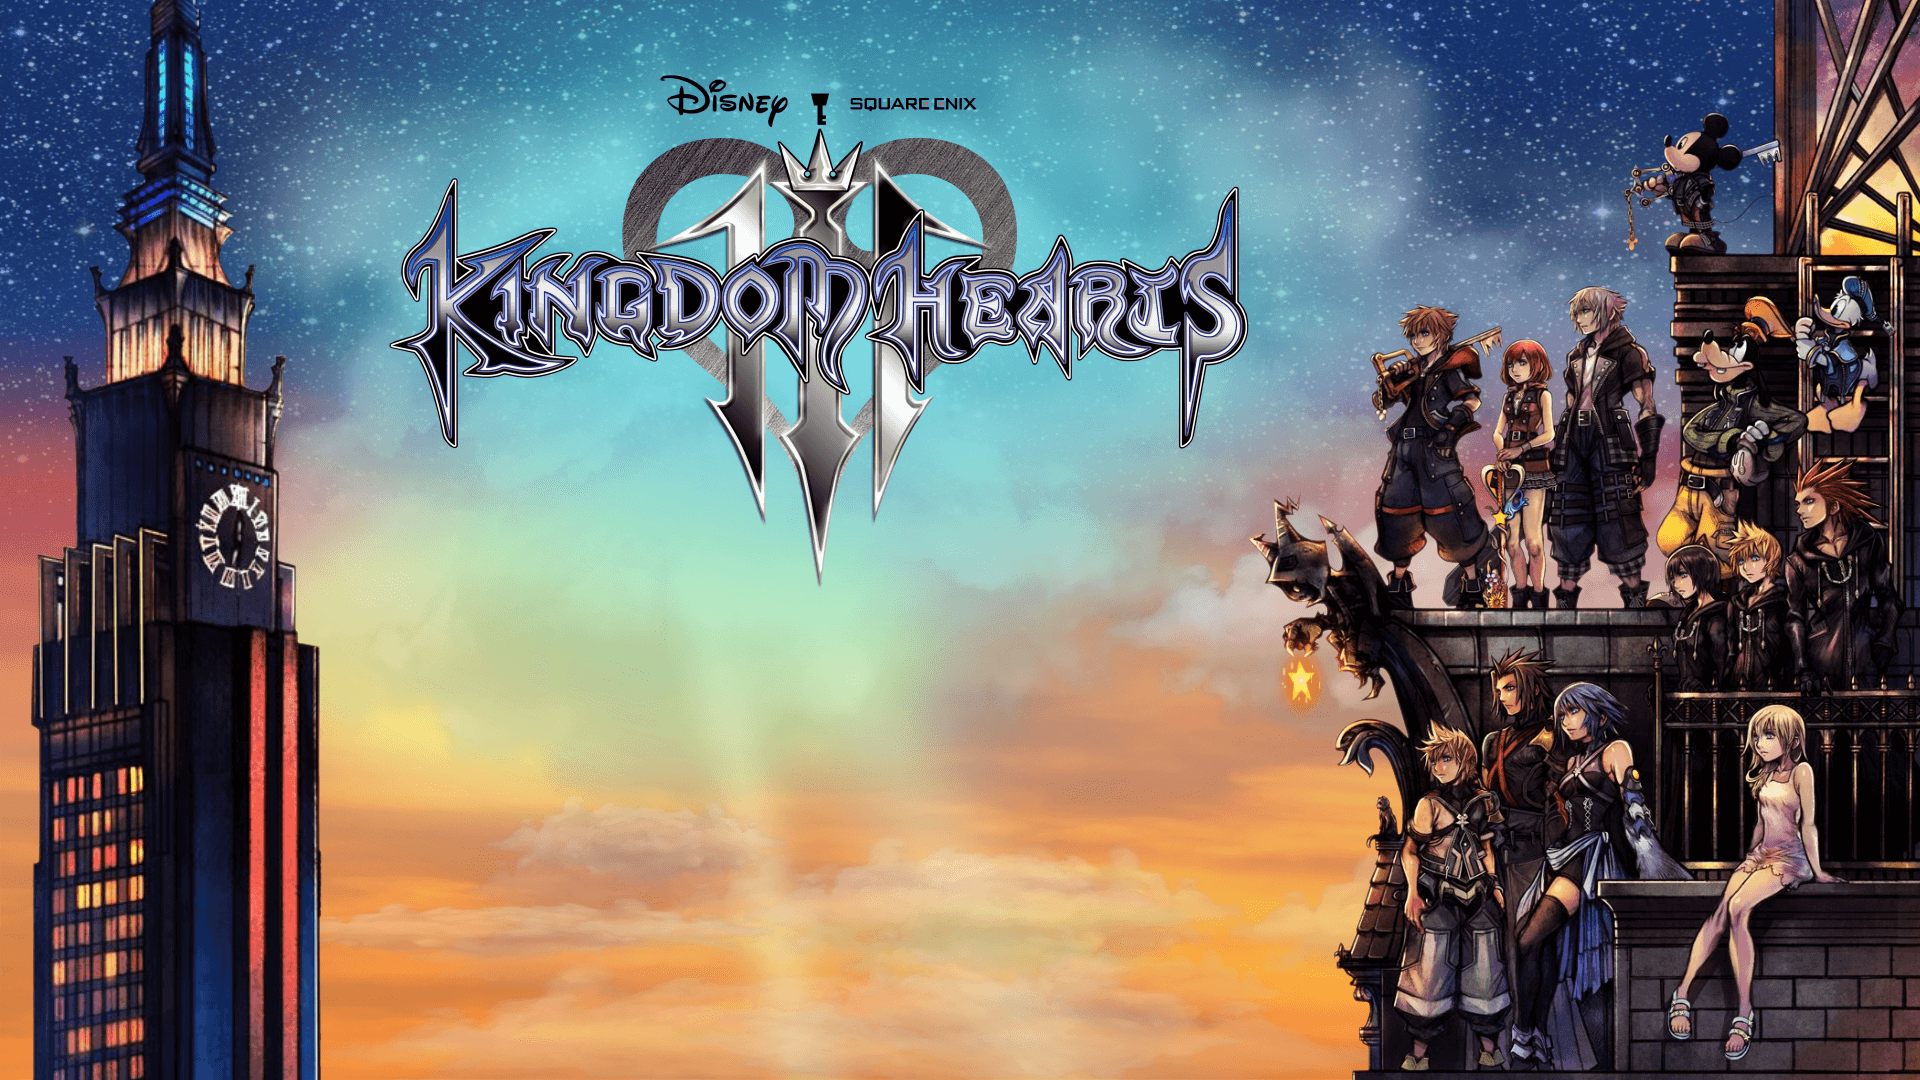 Kingdom Hearts 3 Game Wallpaper 67176 1920x1080px